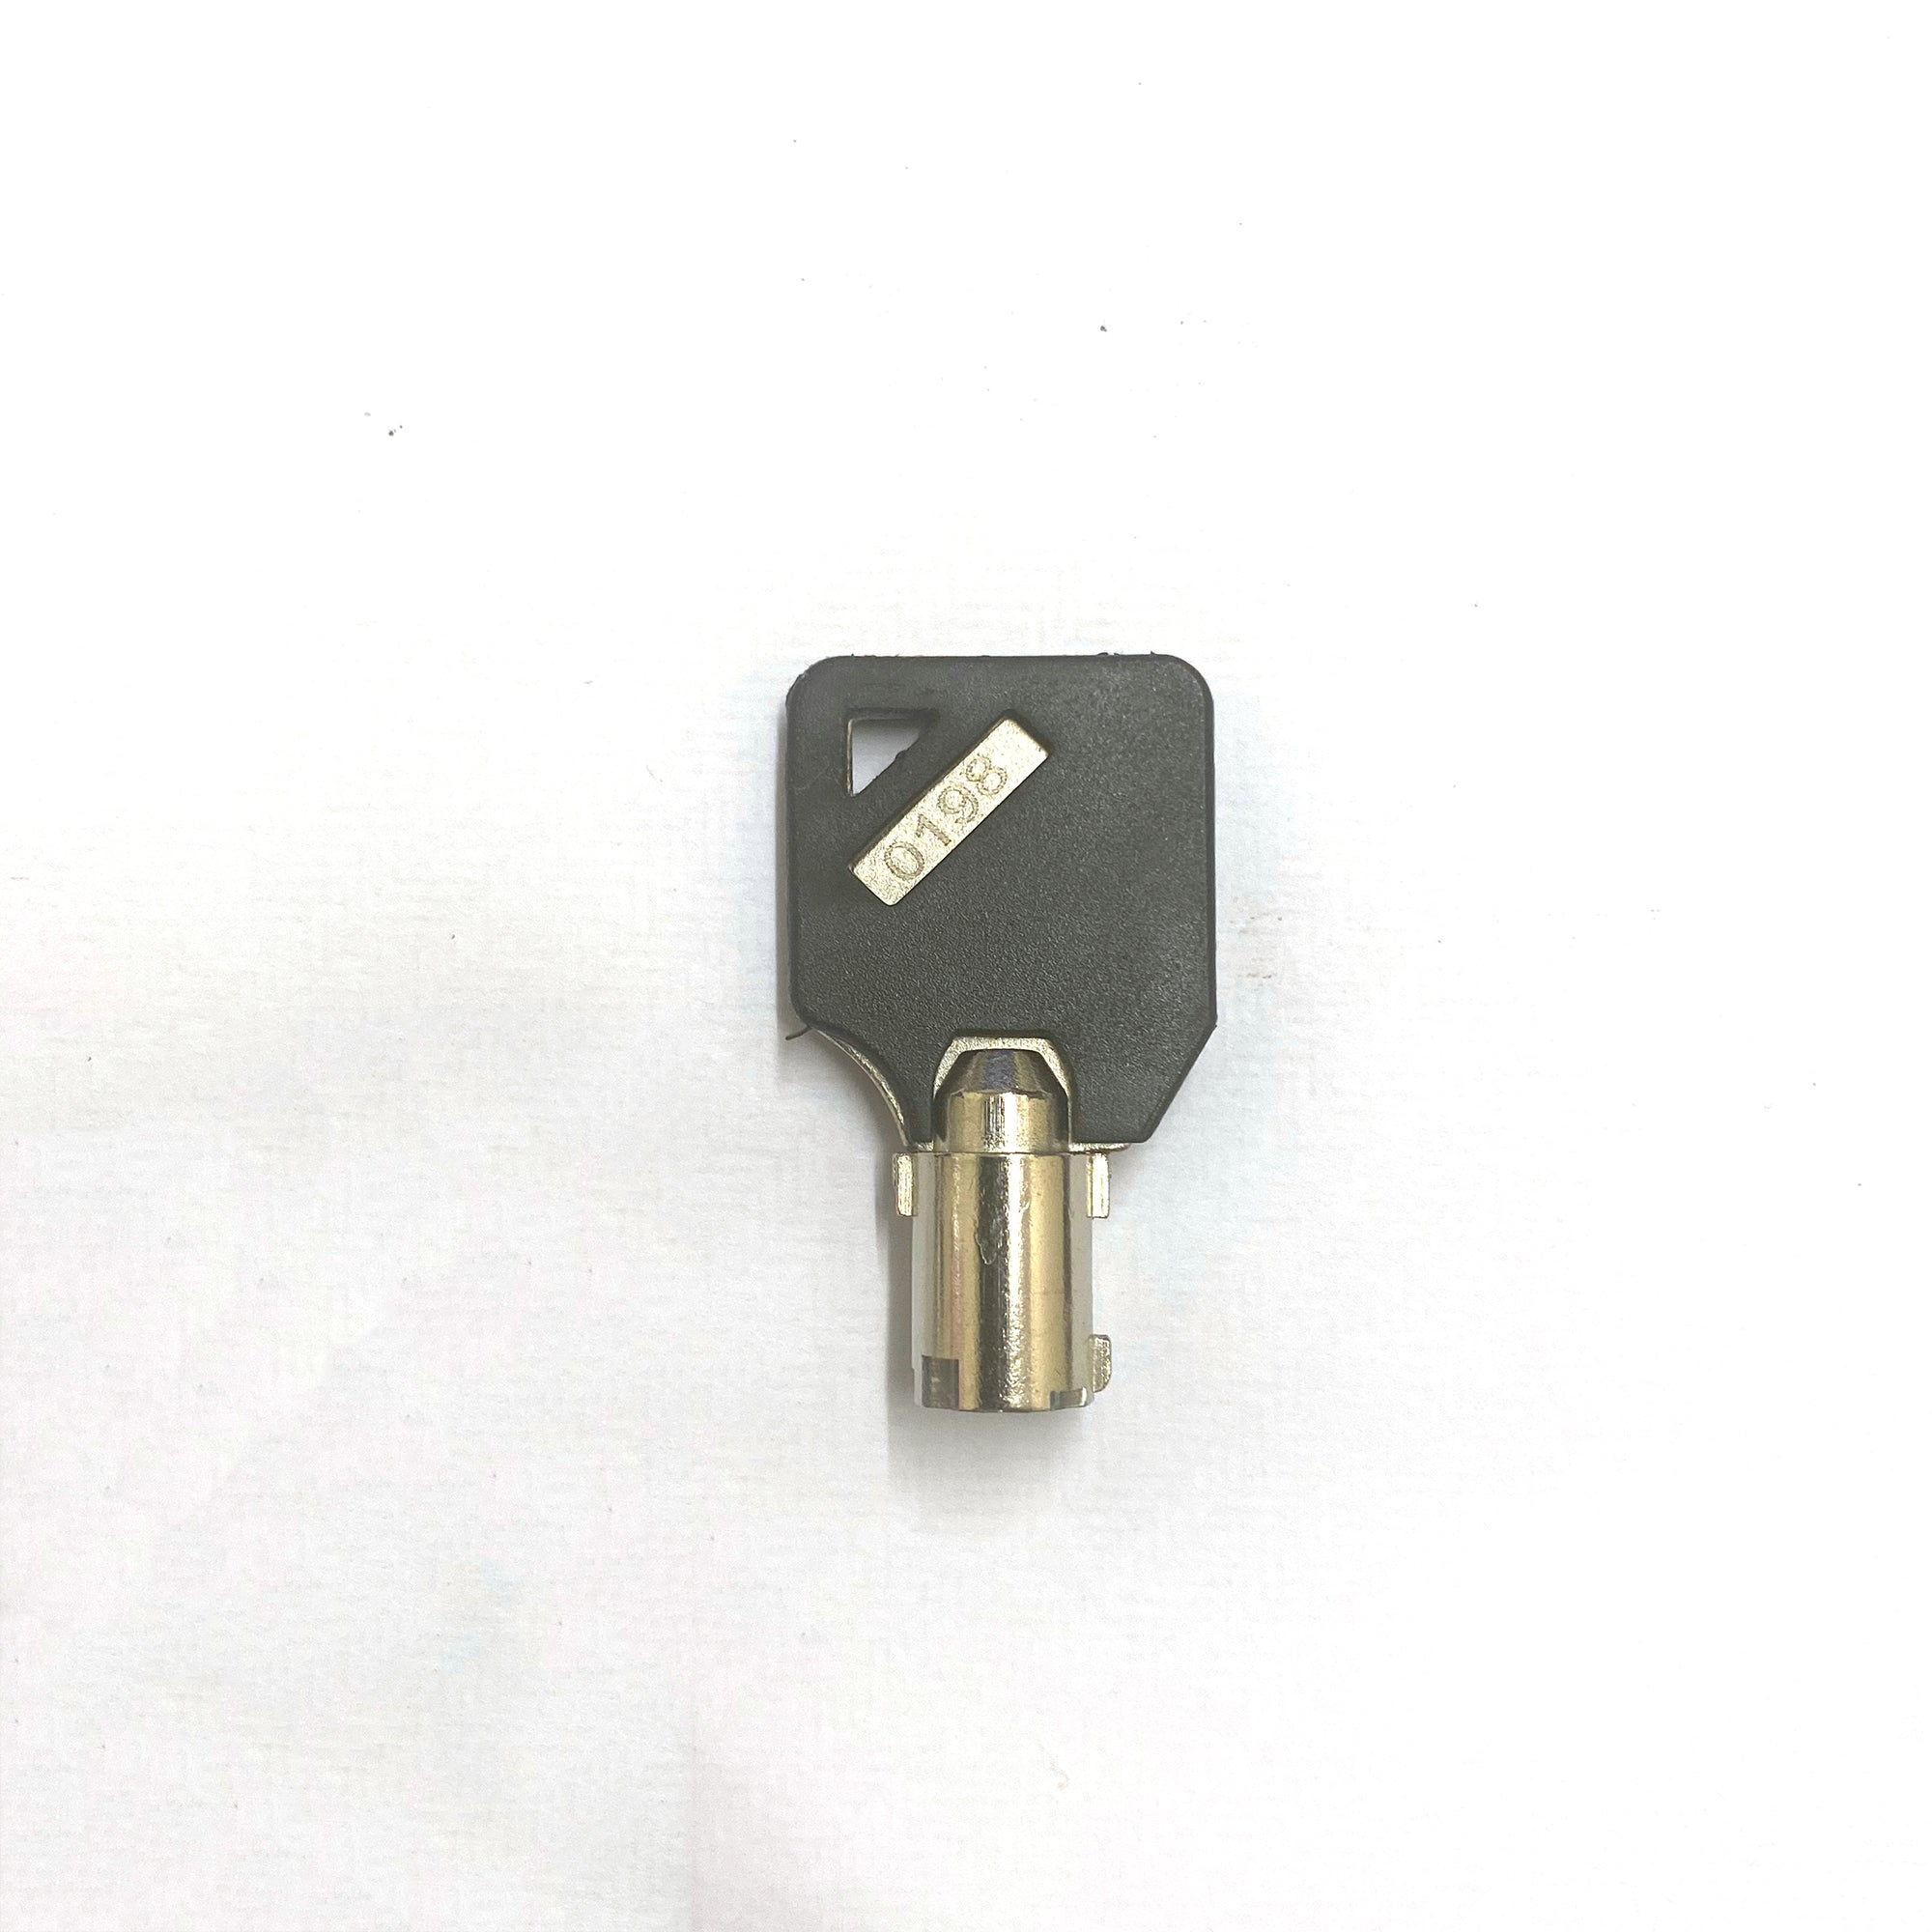 Replacement Key Set for eFOLDI Scooter MK1.5